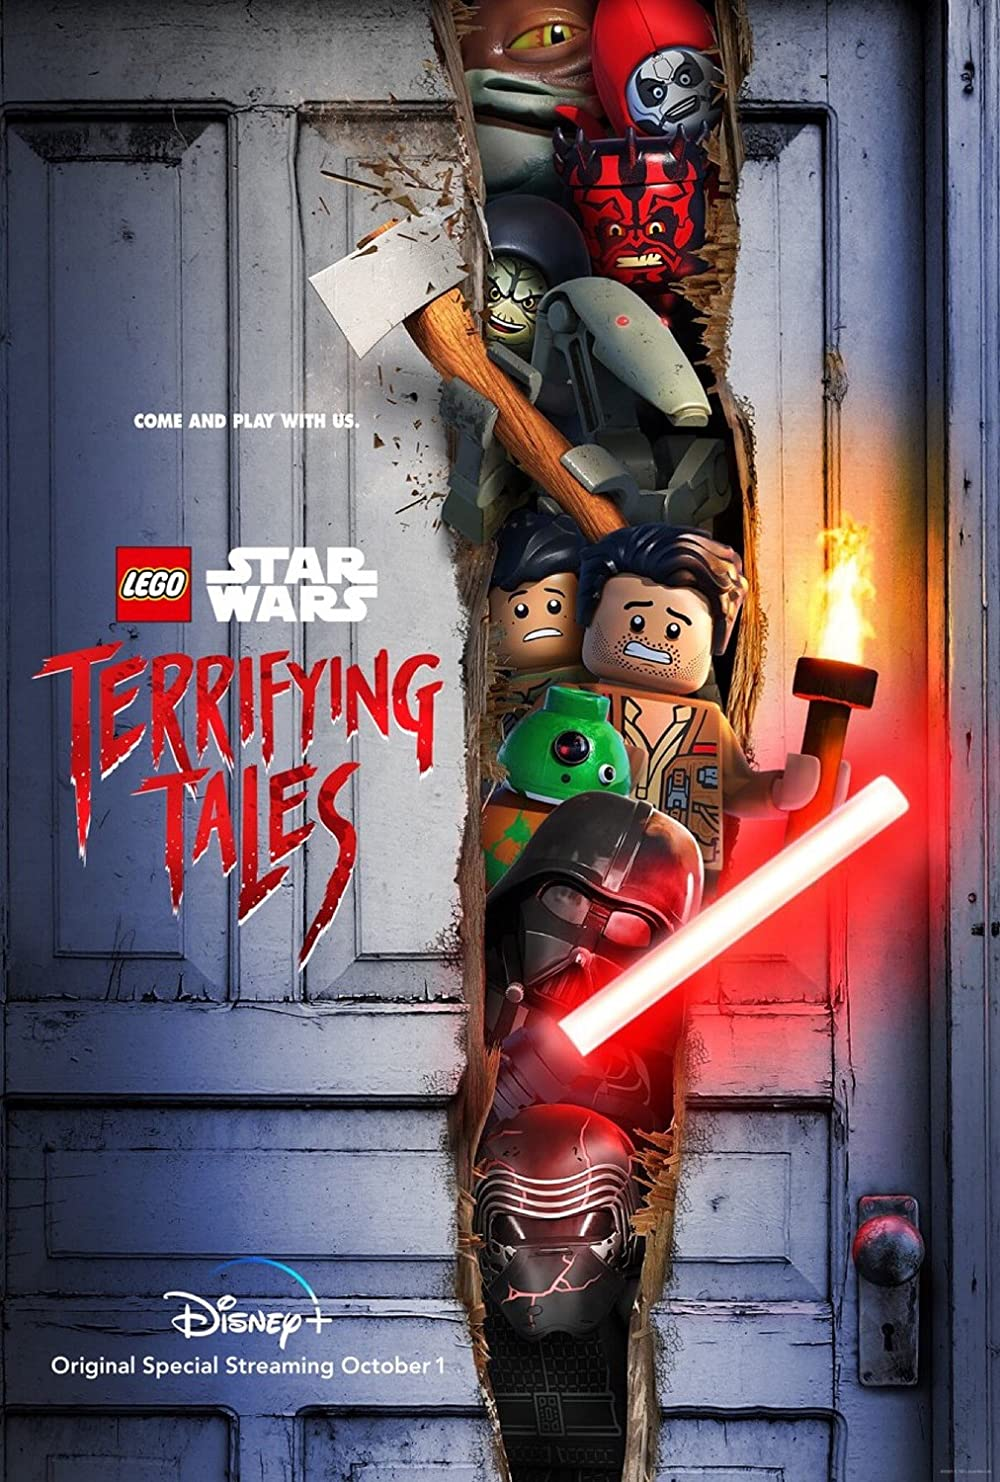 Lego Star Wars Terrifying Tales| Watch Movies Online